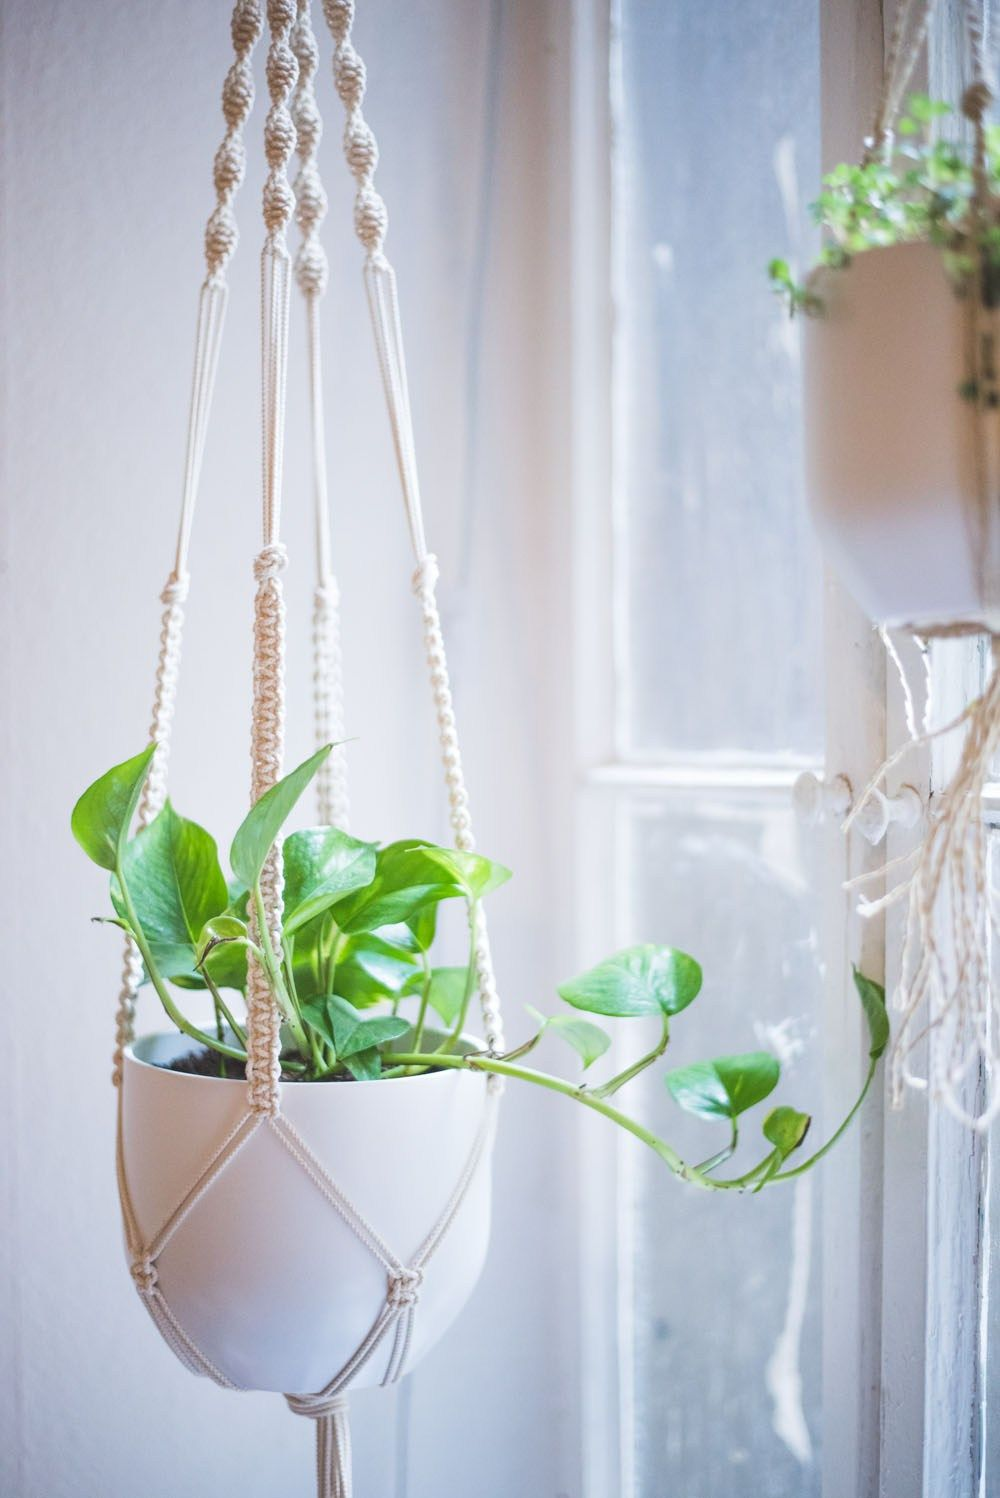 A Detailed Step By Macrame Plant Hanger Tutorial With Lots Of Pictures Videos And Links